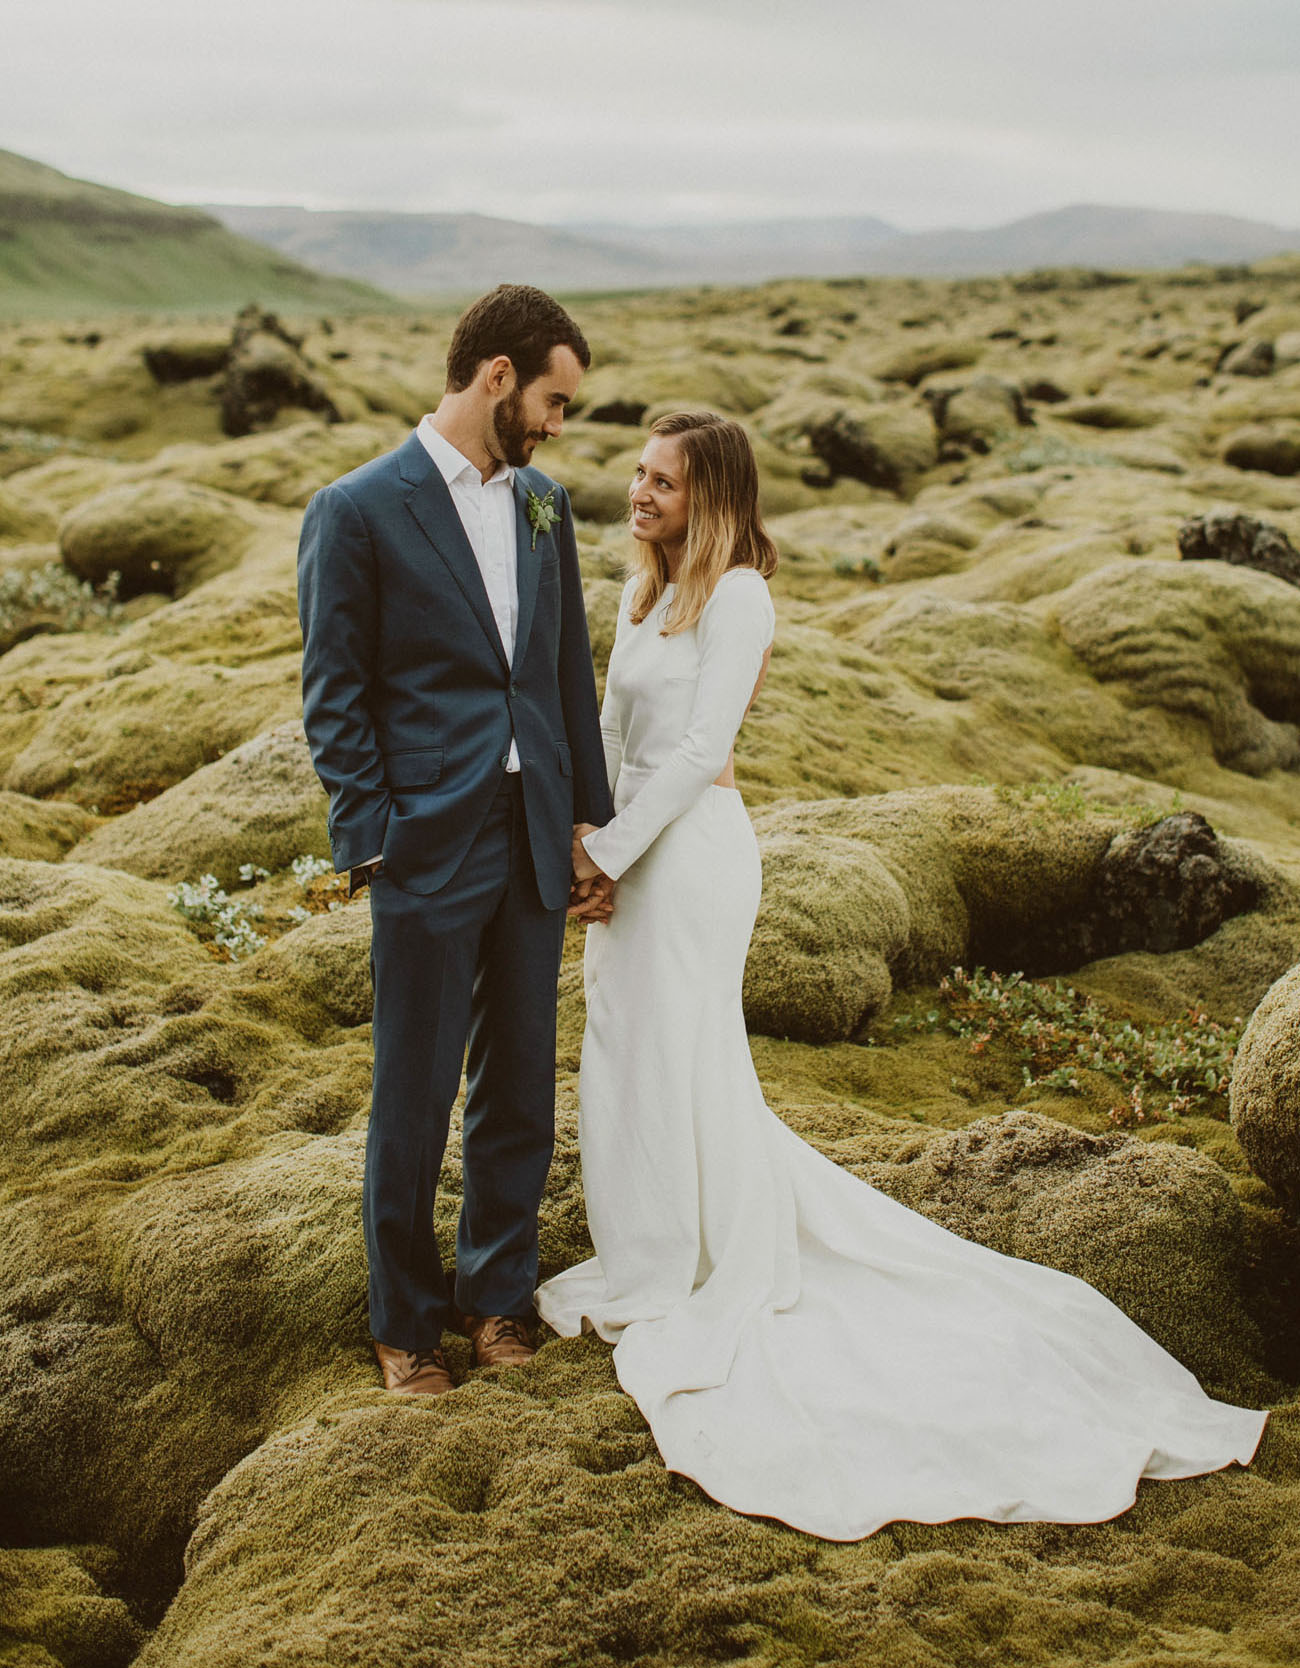 This couple made a cool trip across Iceland, which culminated in an intimate elopement